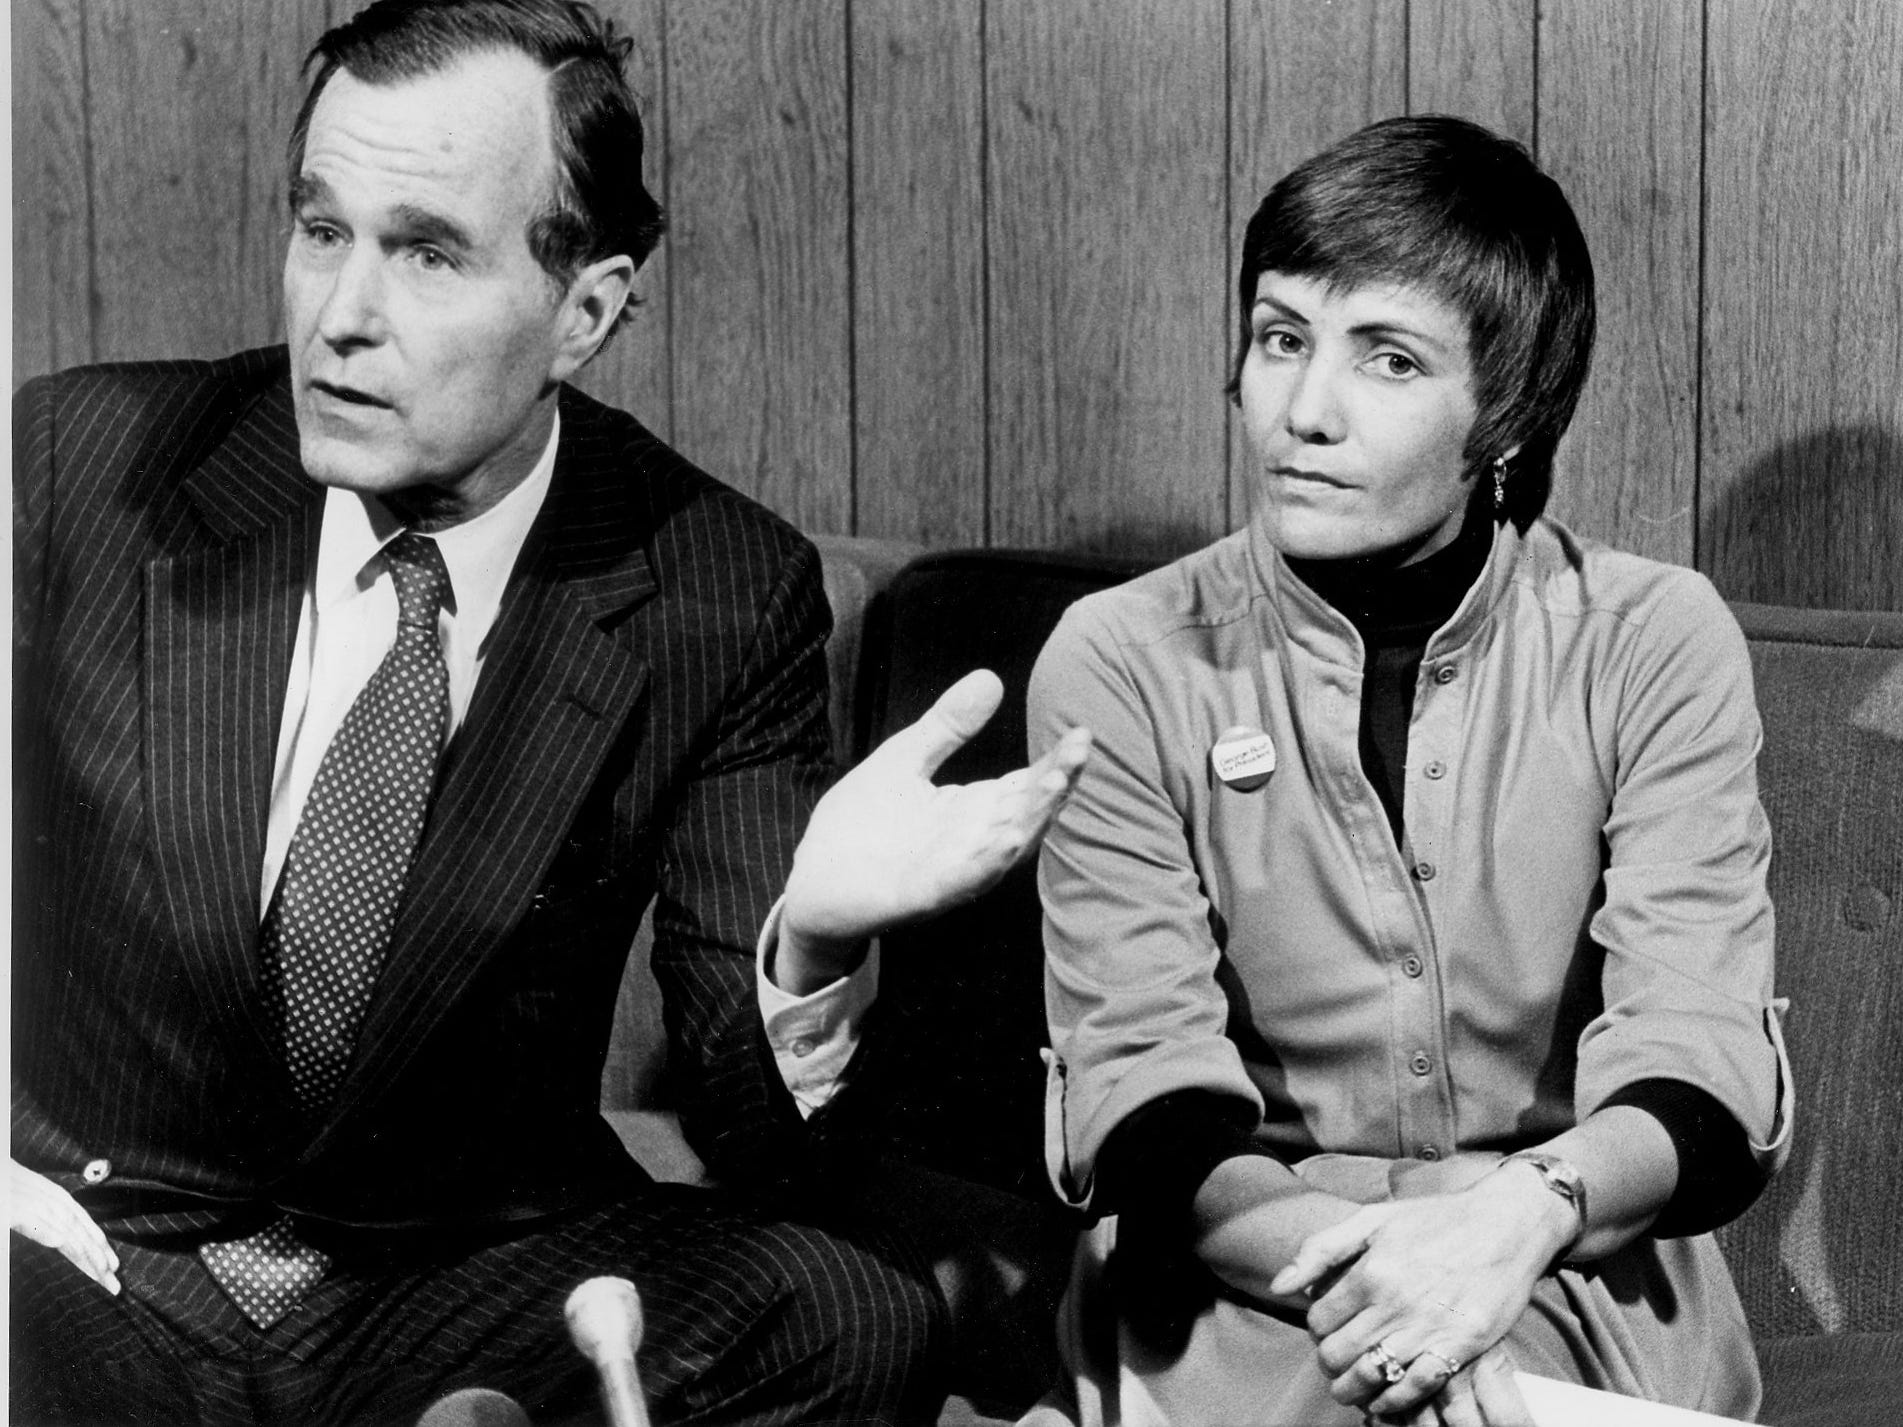 George Bush introduces his Michigan Campaign Director, Loret Ruppe at the Detroit Press Club in November 1979.